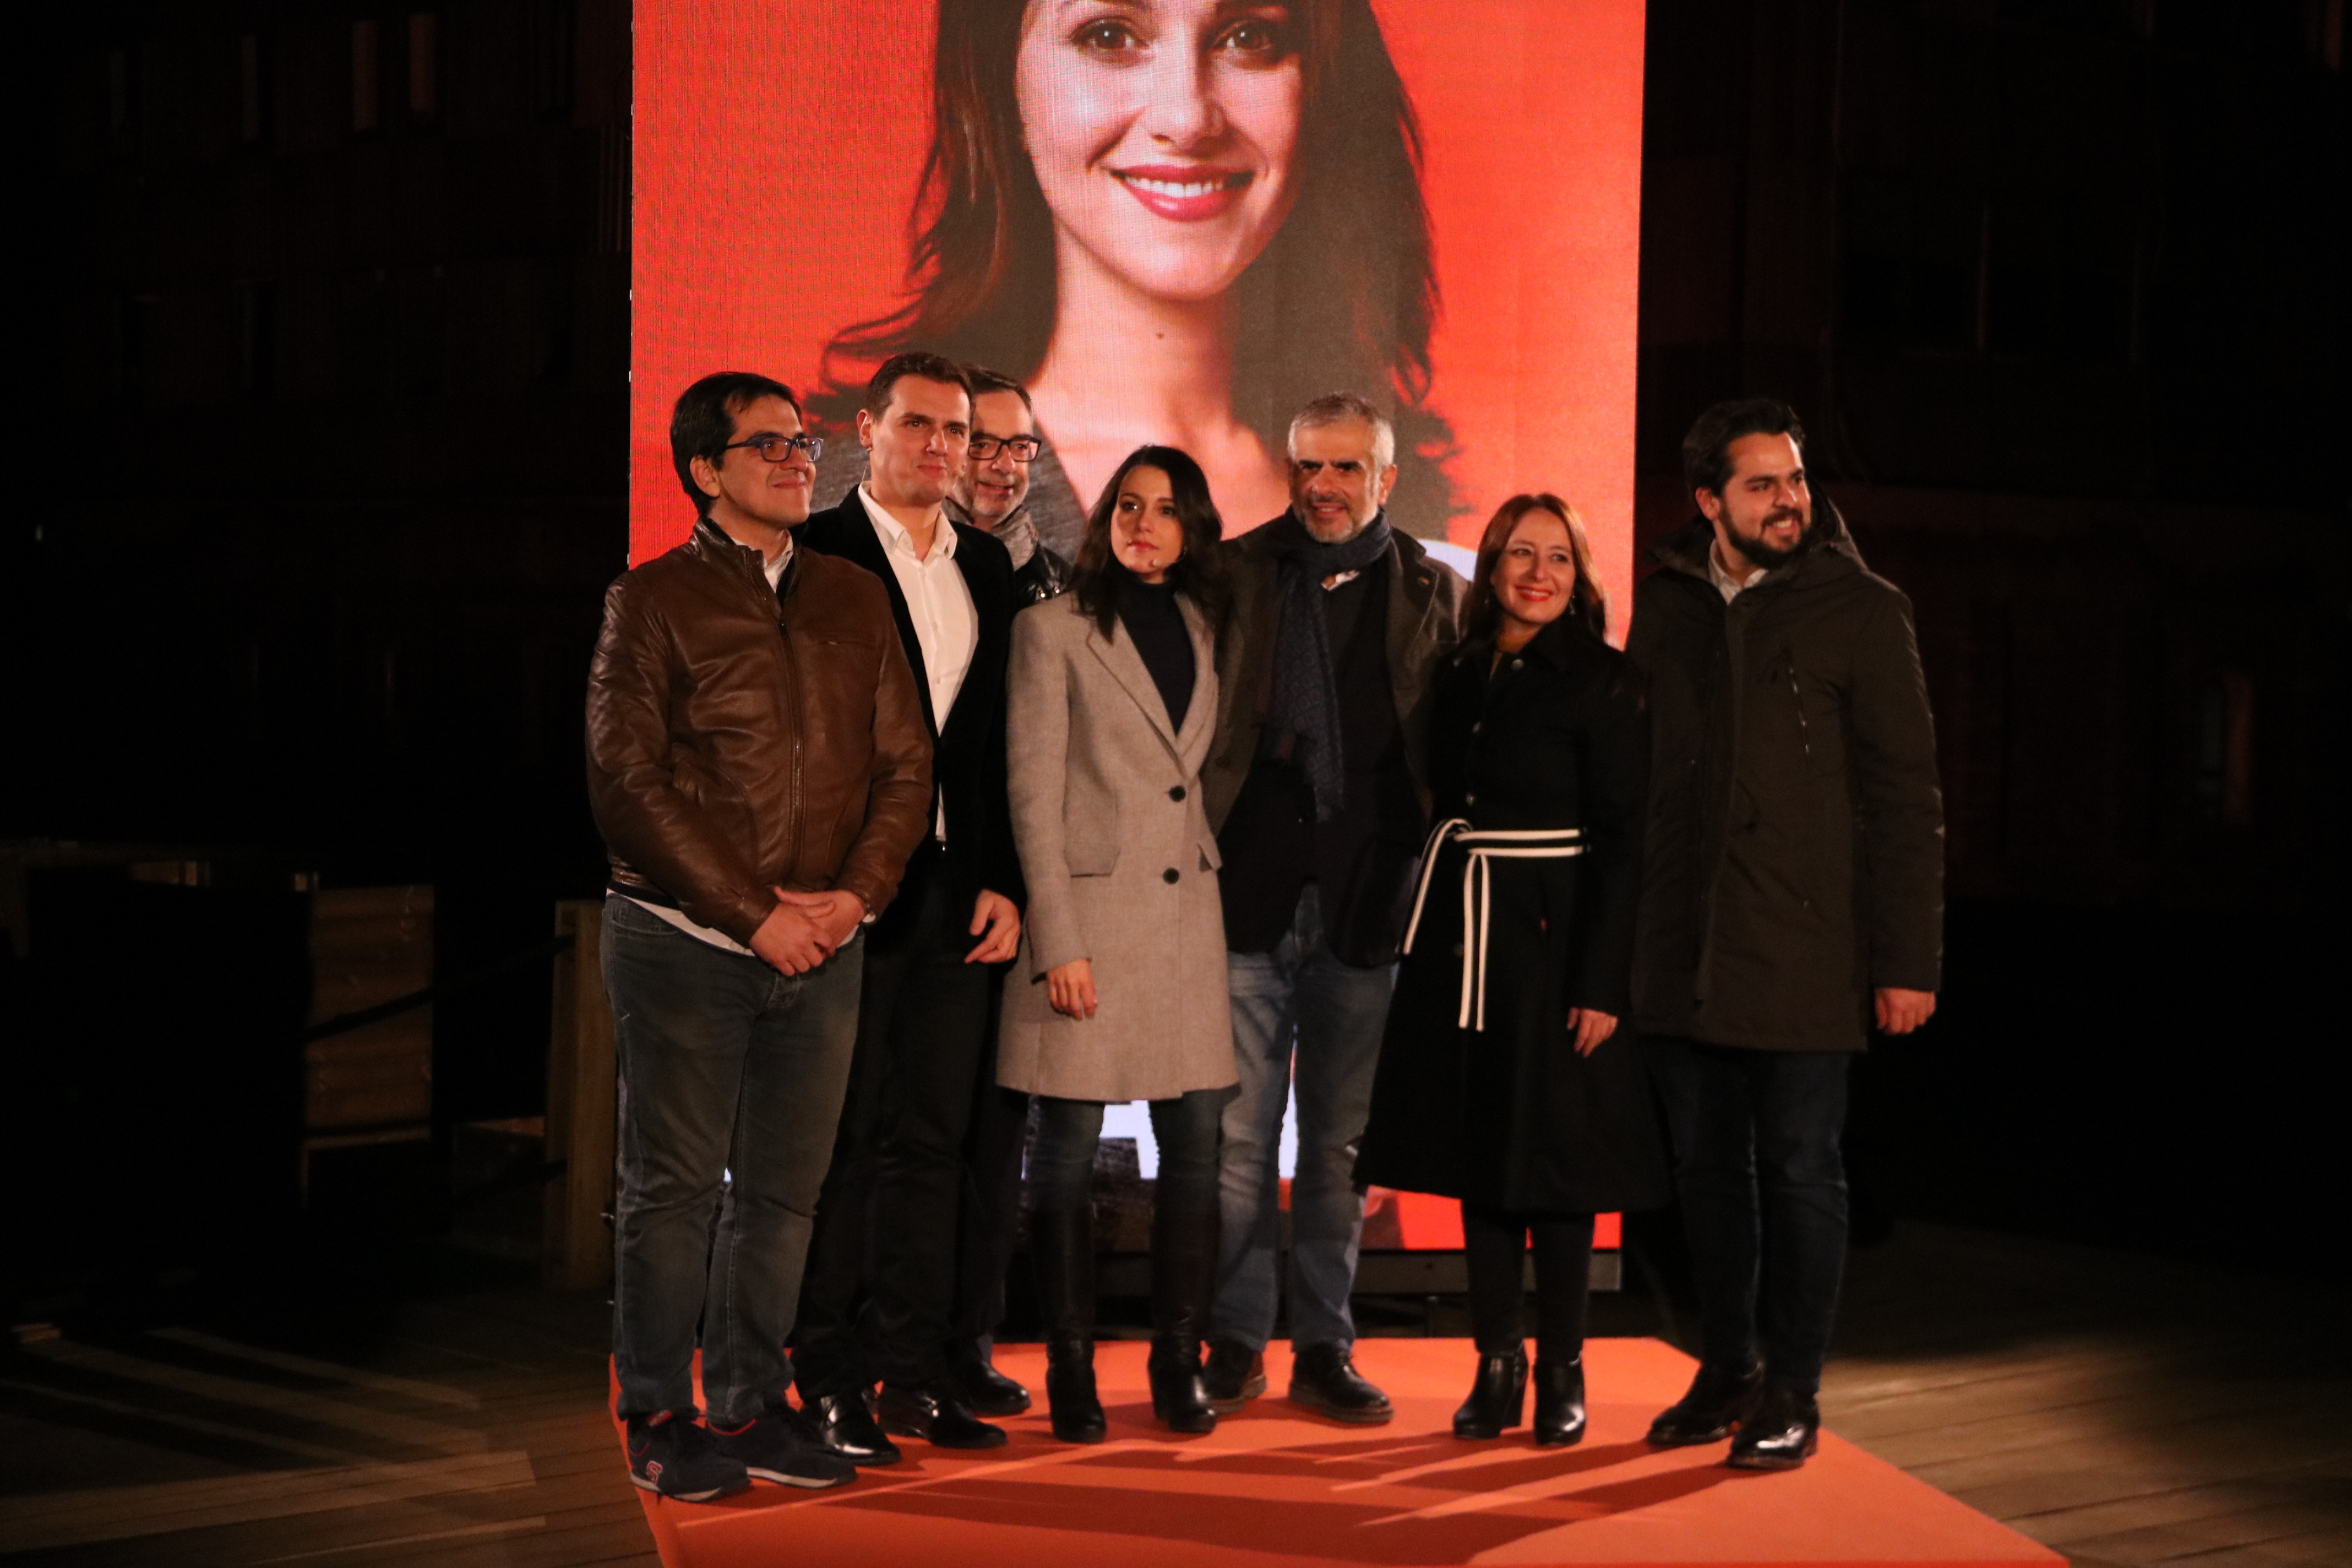 The C's party members, led by party candidate, Inés Arrimadas